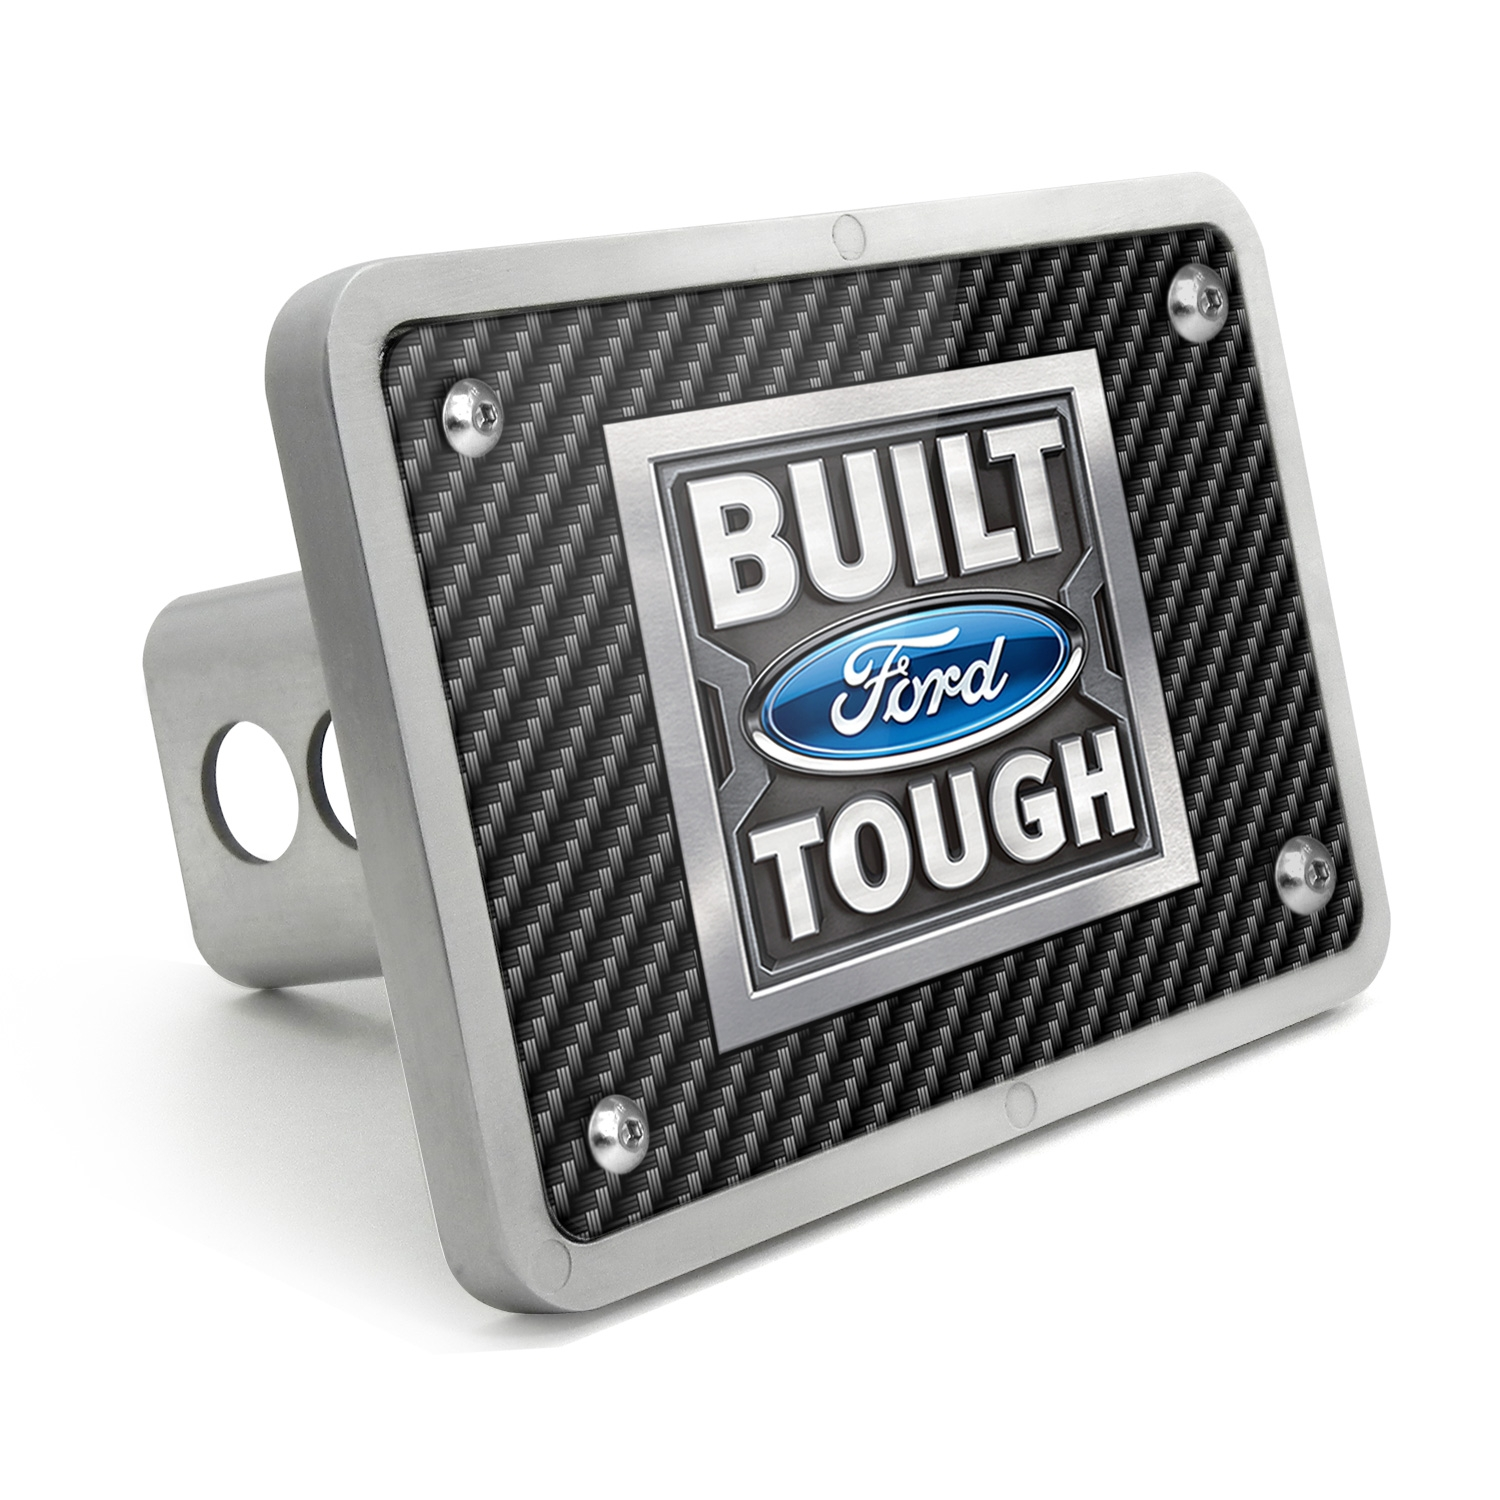 Ford Built Ford Tough Black Carbon Fiber Texture Plate Billet Aluminum 2 inch Tow Hitch Cover